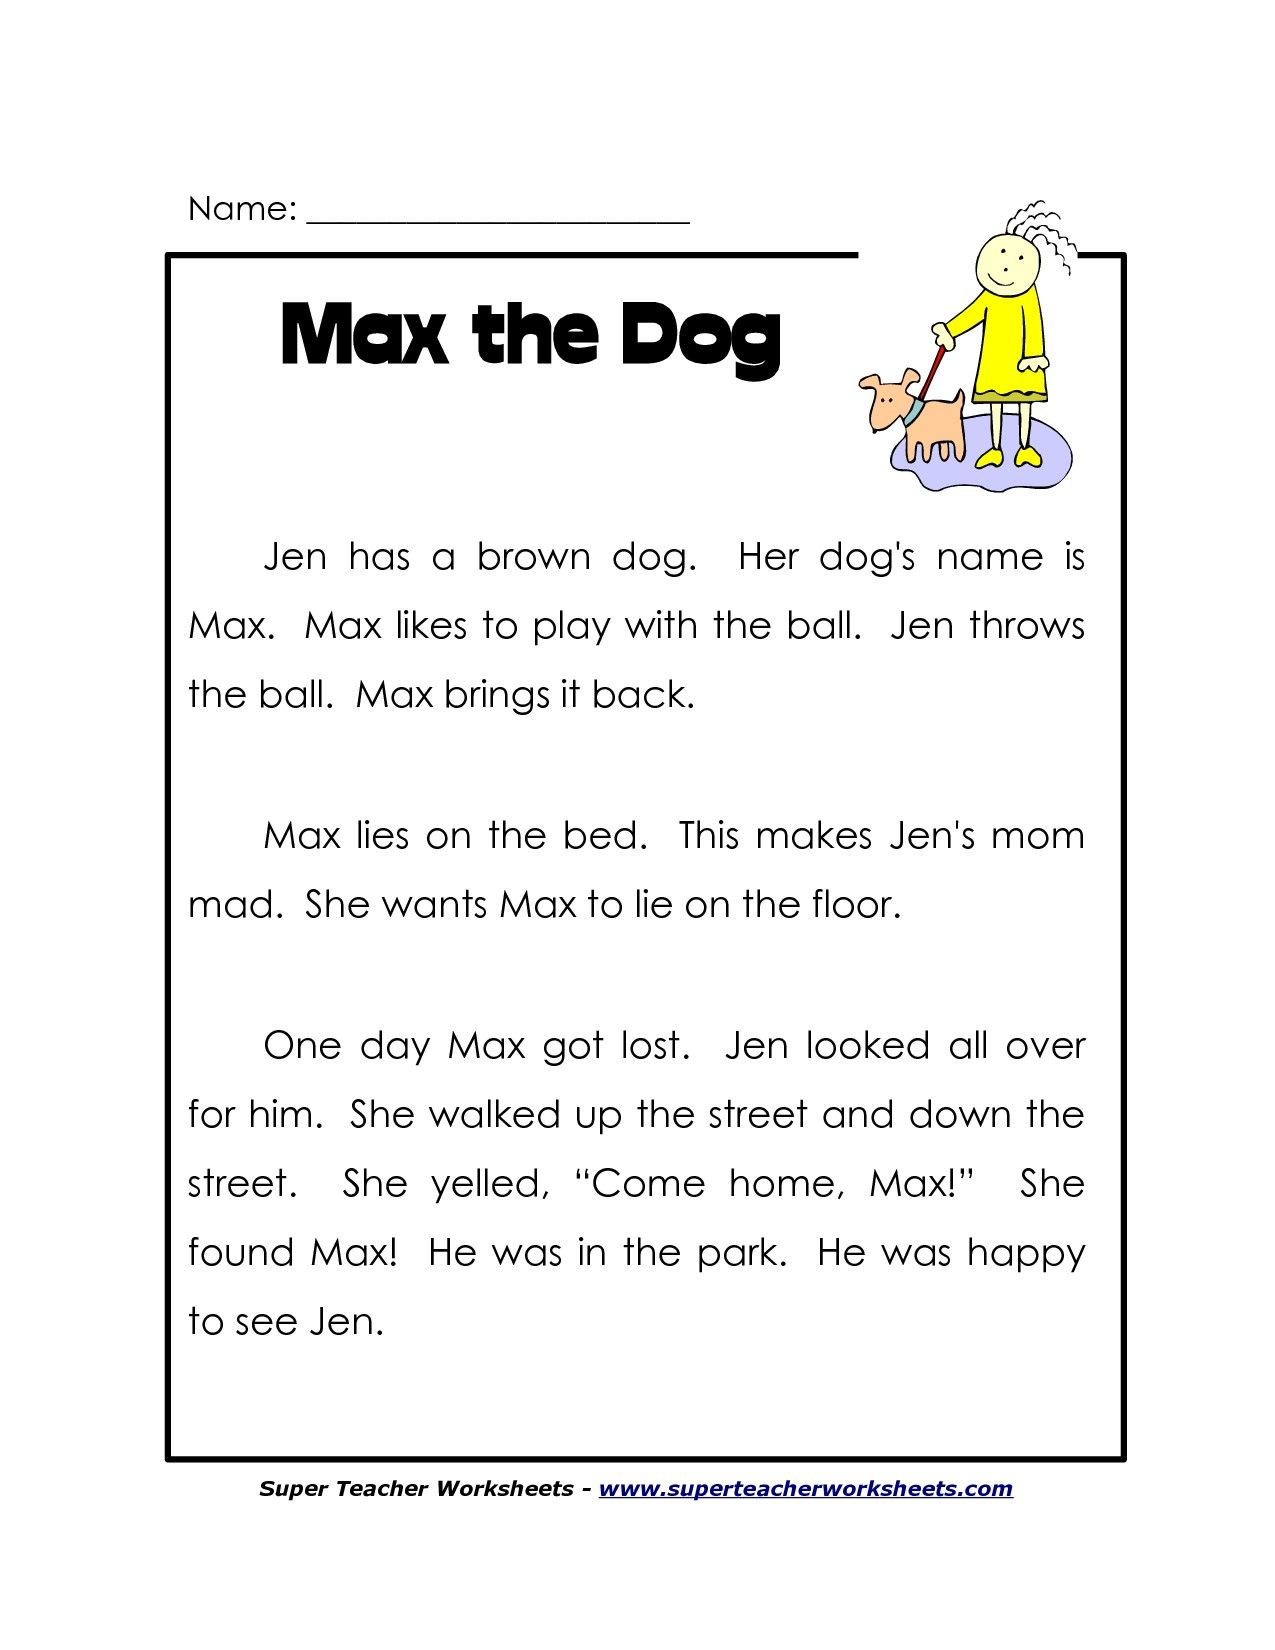 Worksheets Free Printable Reading Worksheets For 1st Grade 1st grade reading worksheets free lots more on superteacherworksheets com